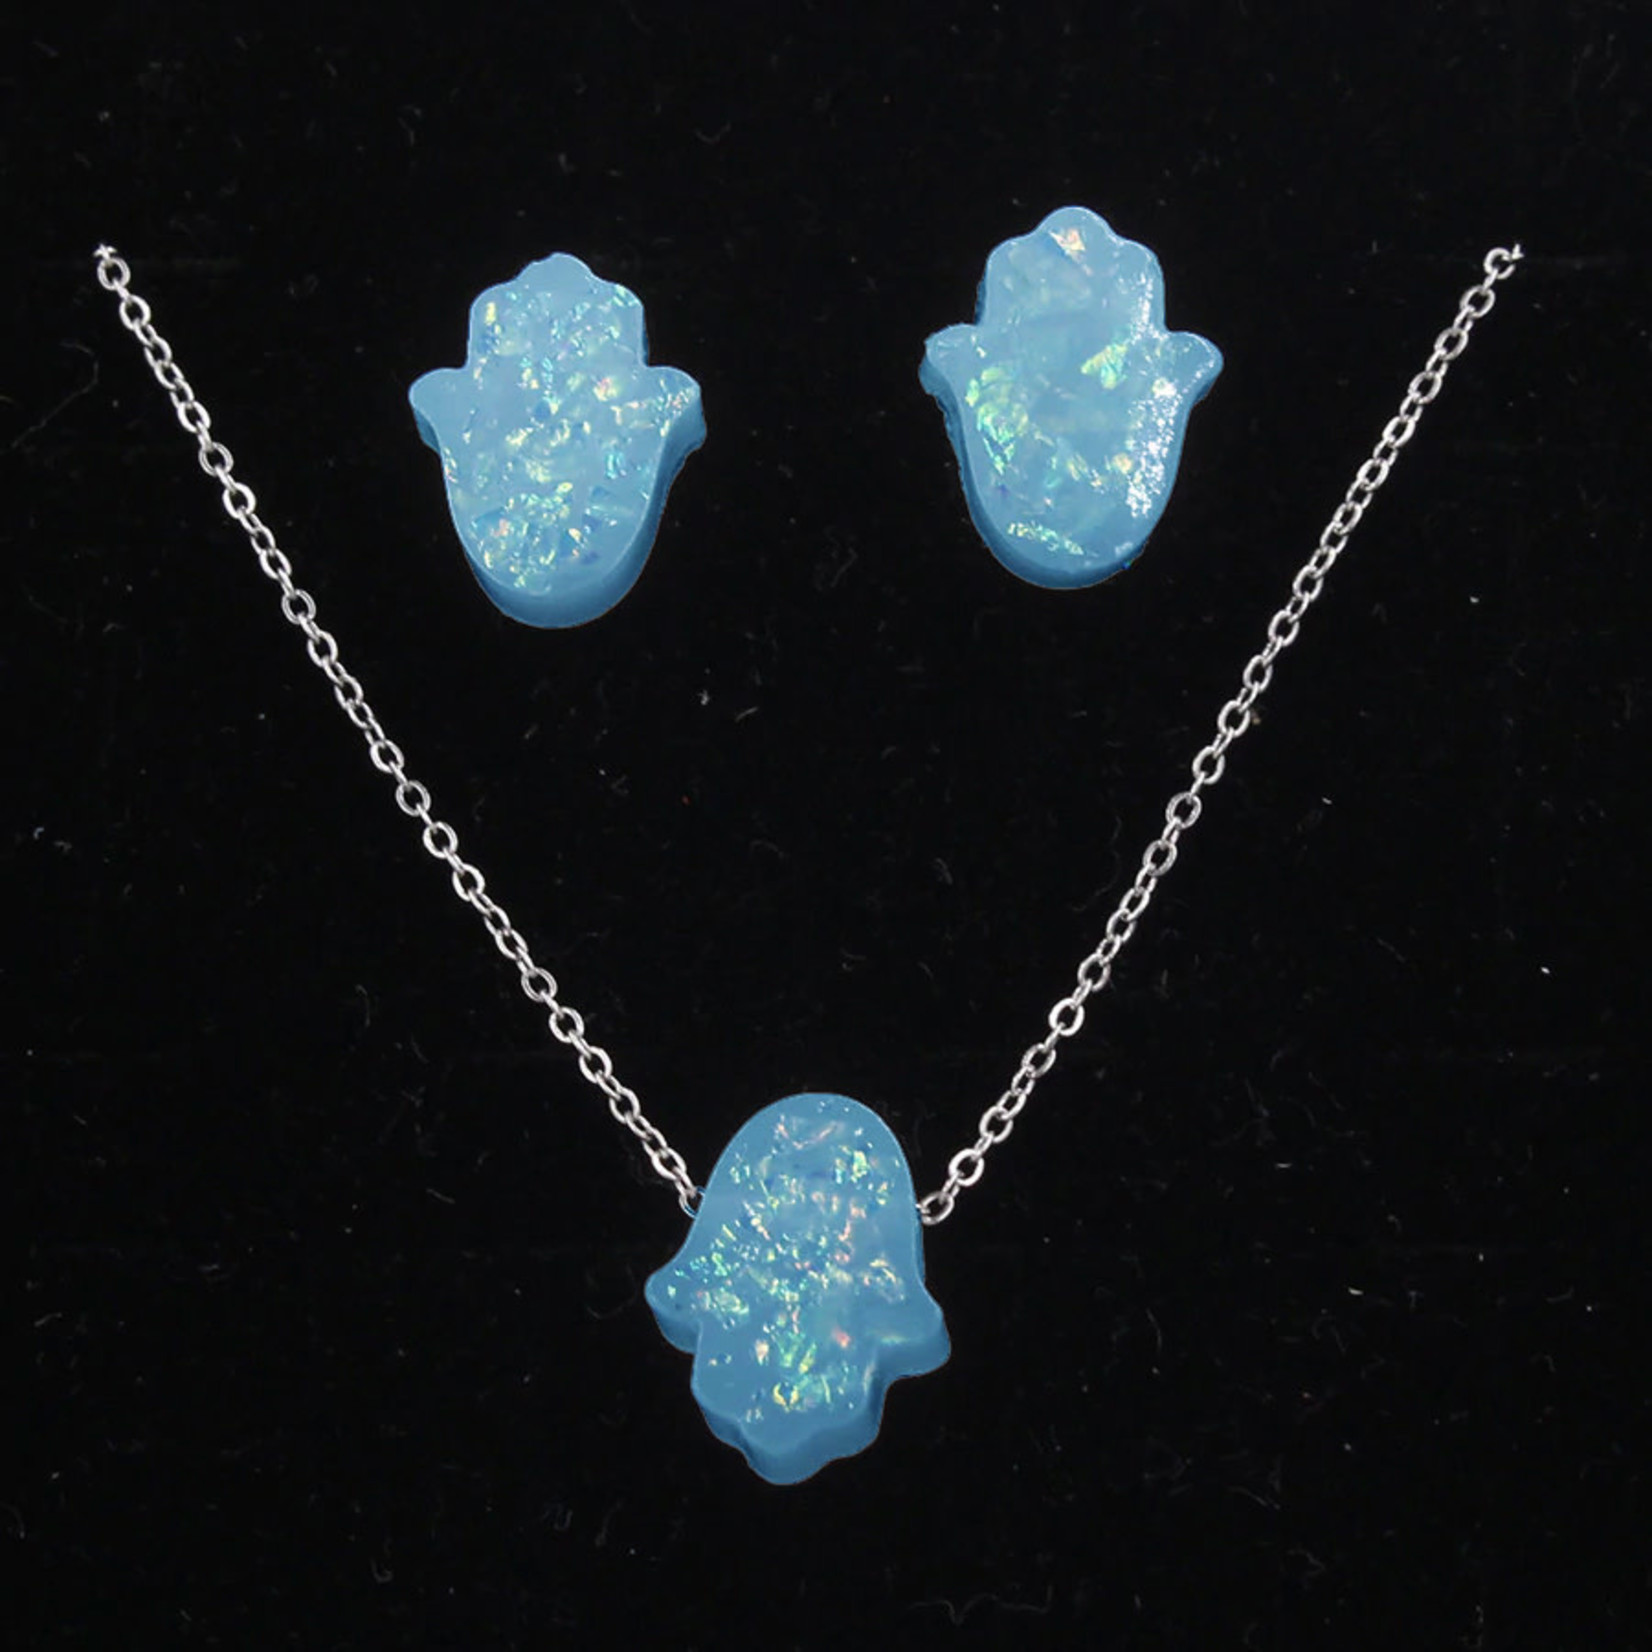 Hamsa Necklace and Earring Set